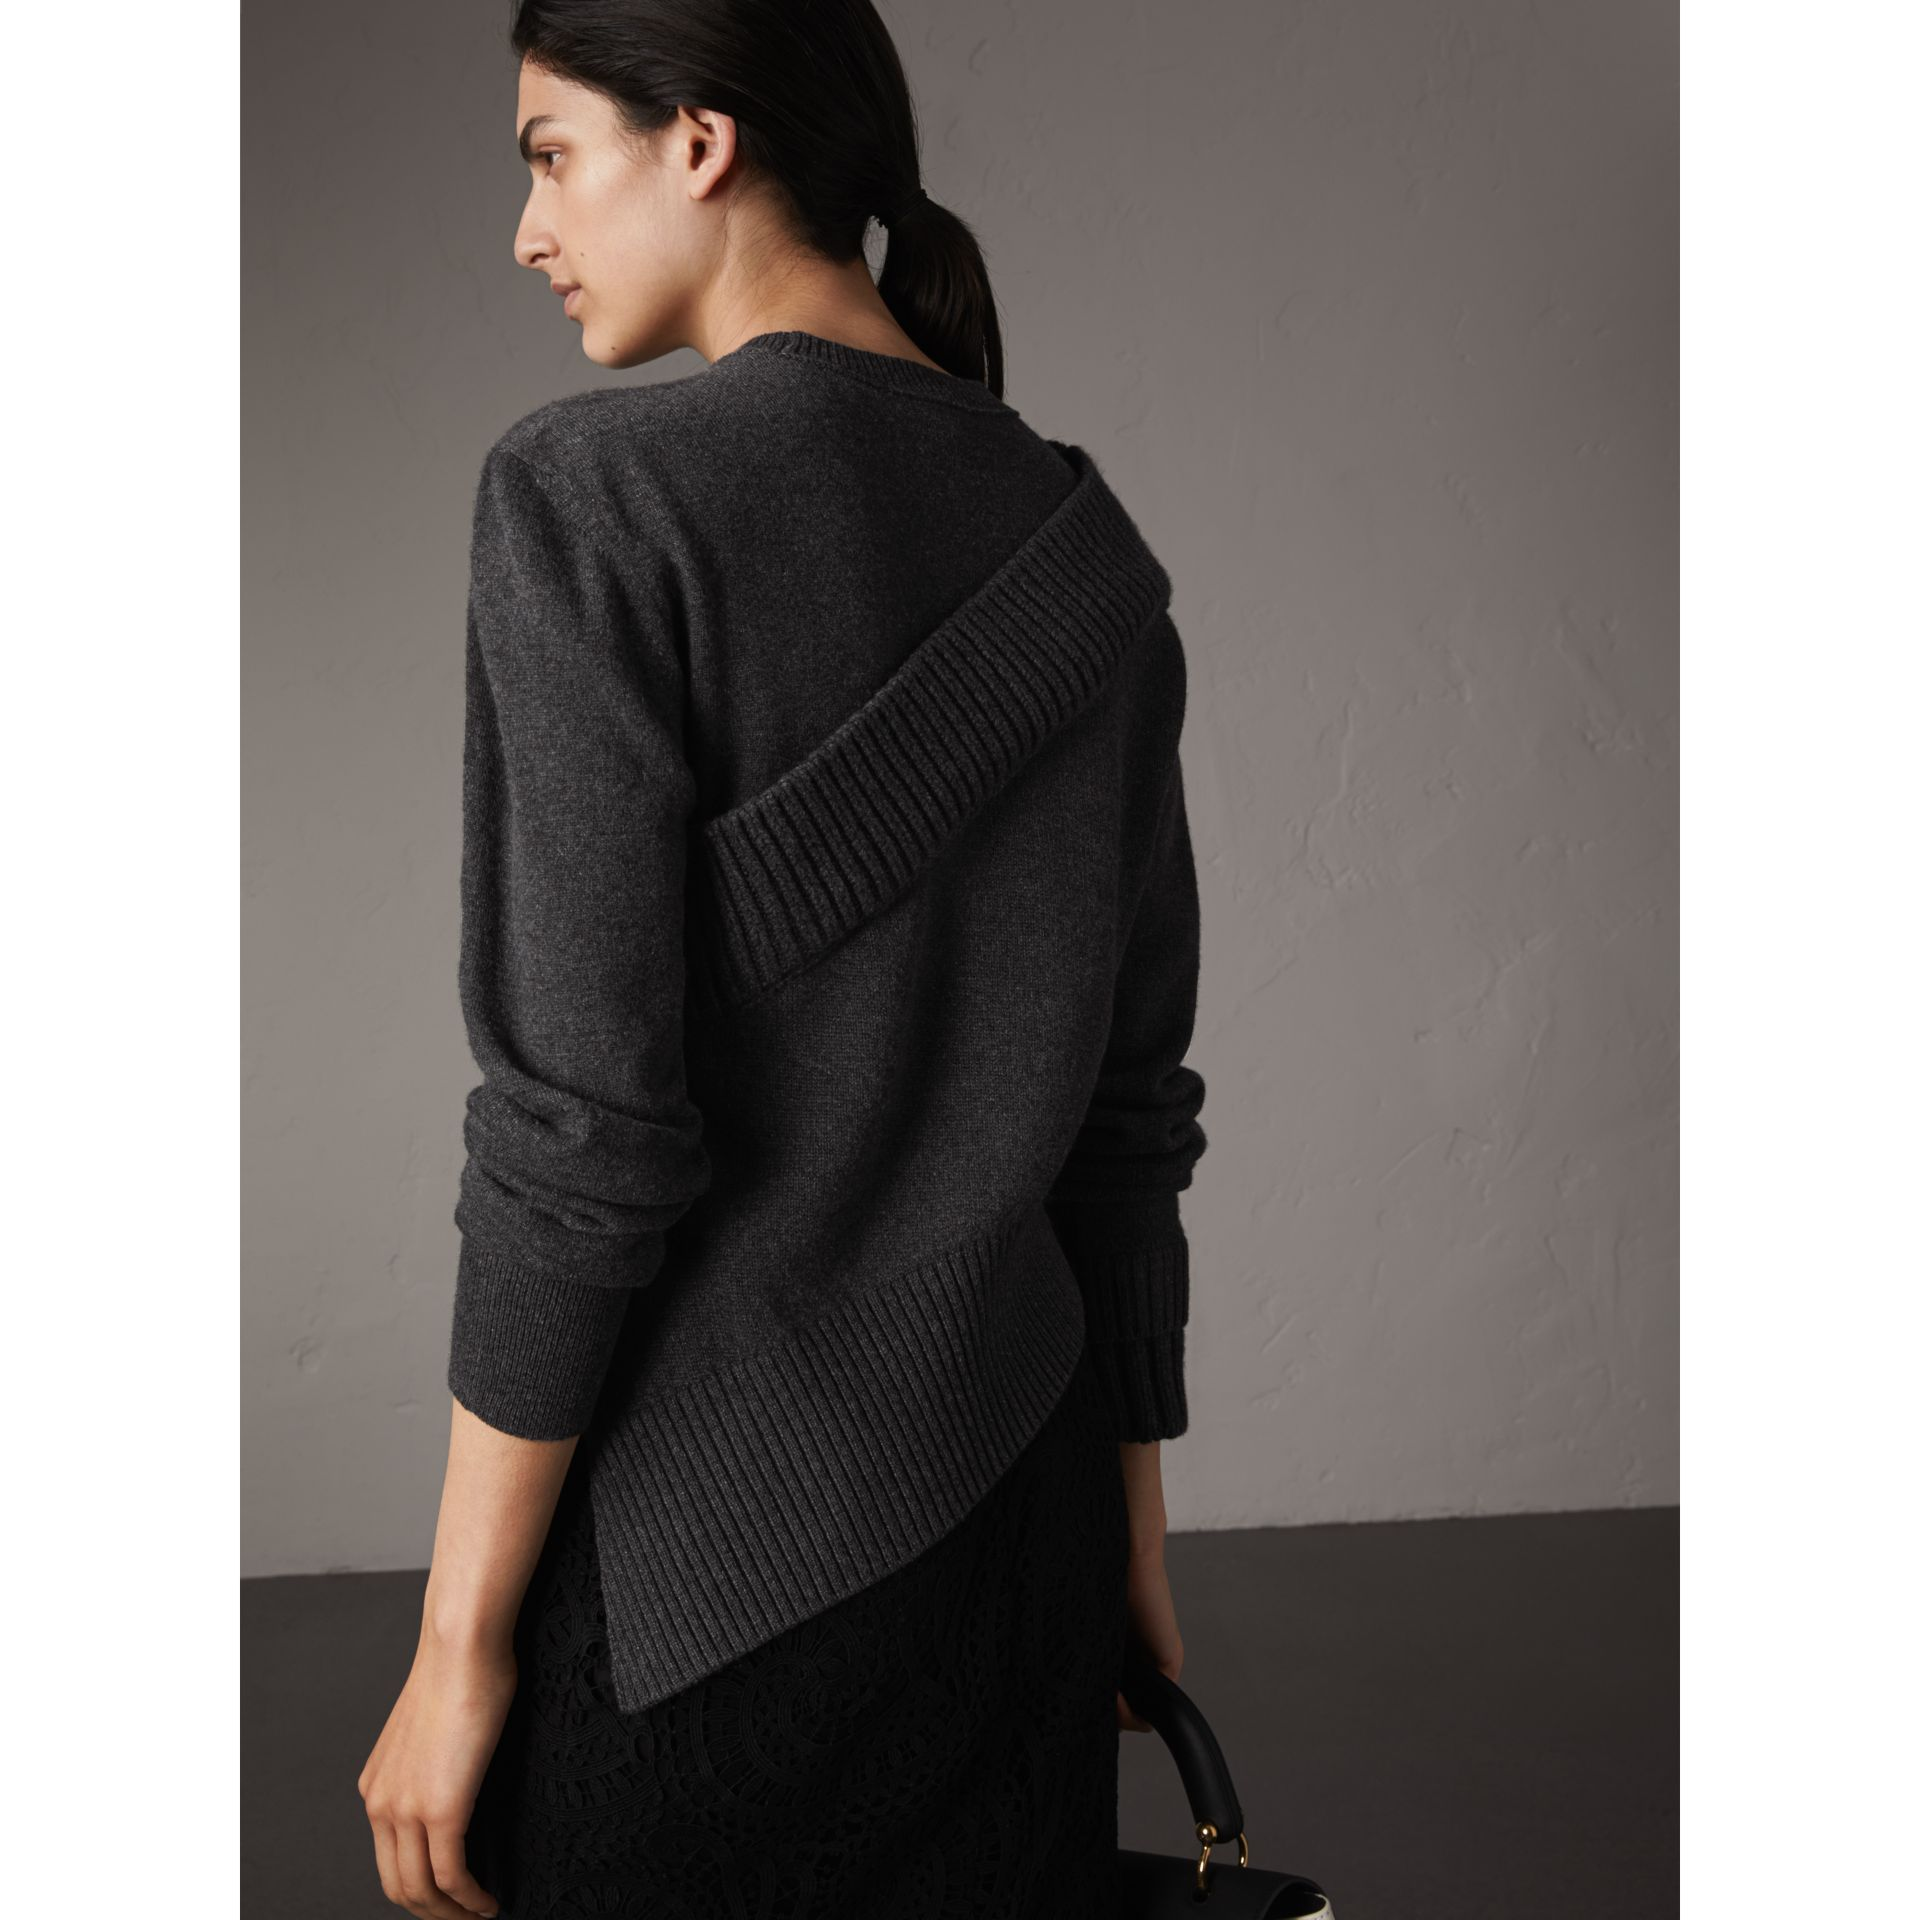 Rib Knit Detail Cashmere Asymmetric Sweater in Charcoal - Women | Burberry Australia - gallery image 3